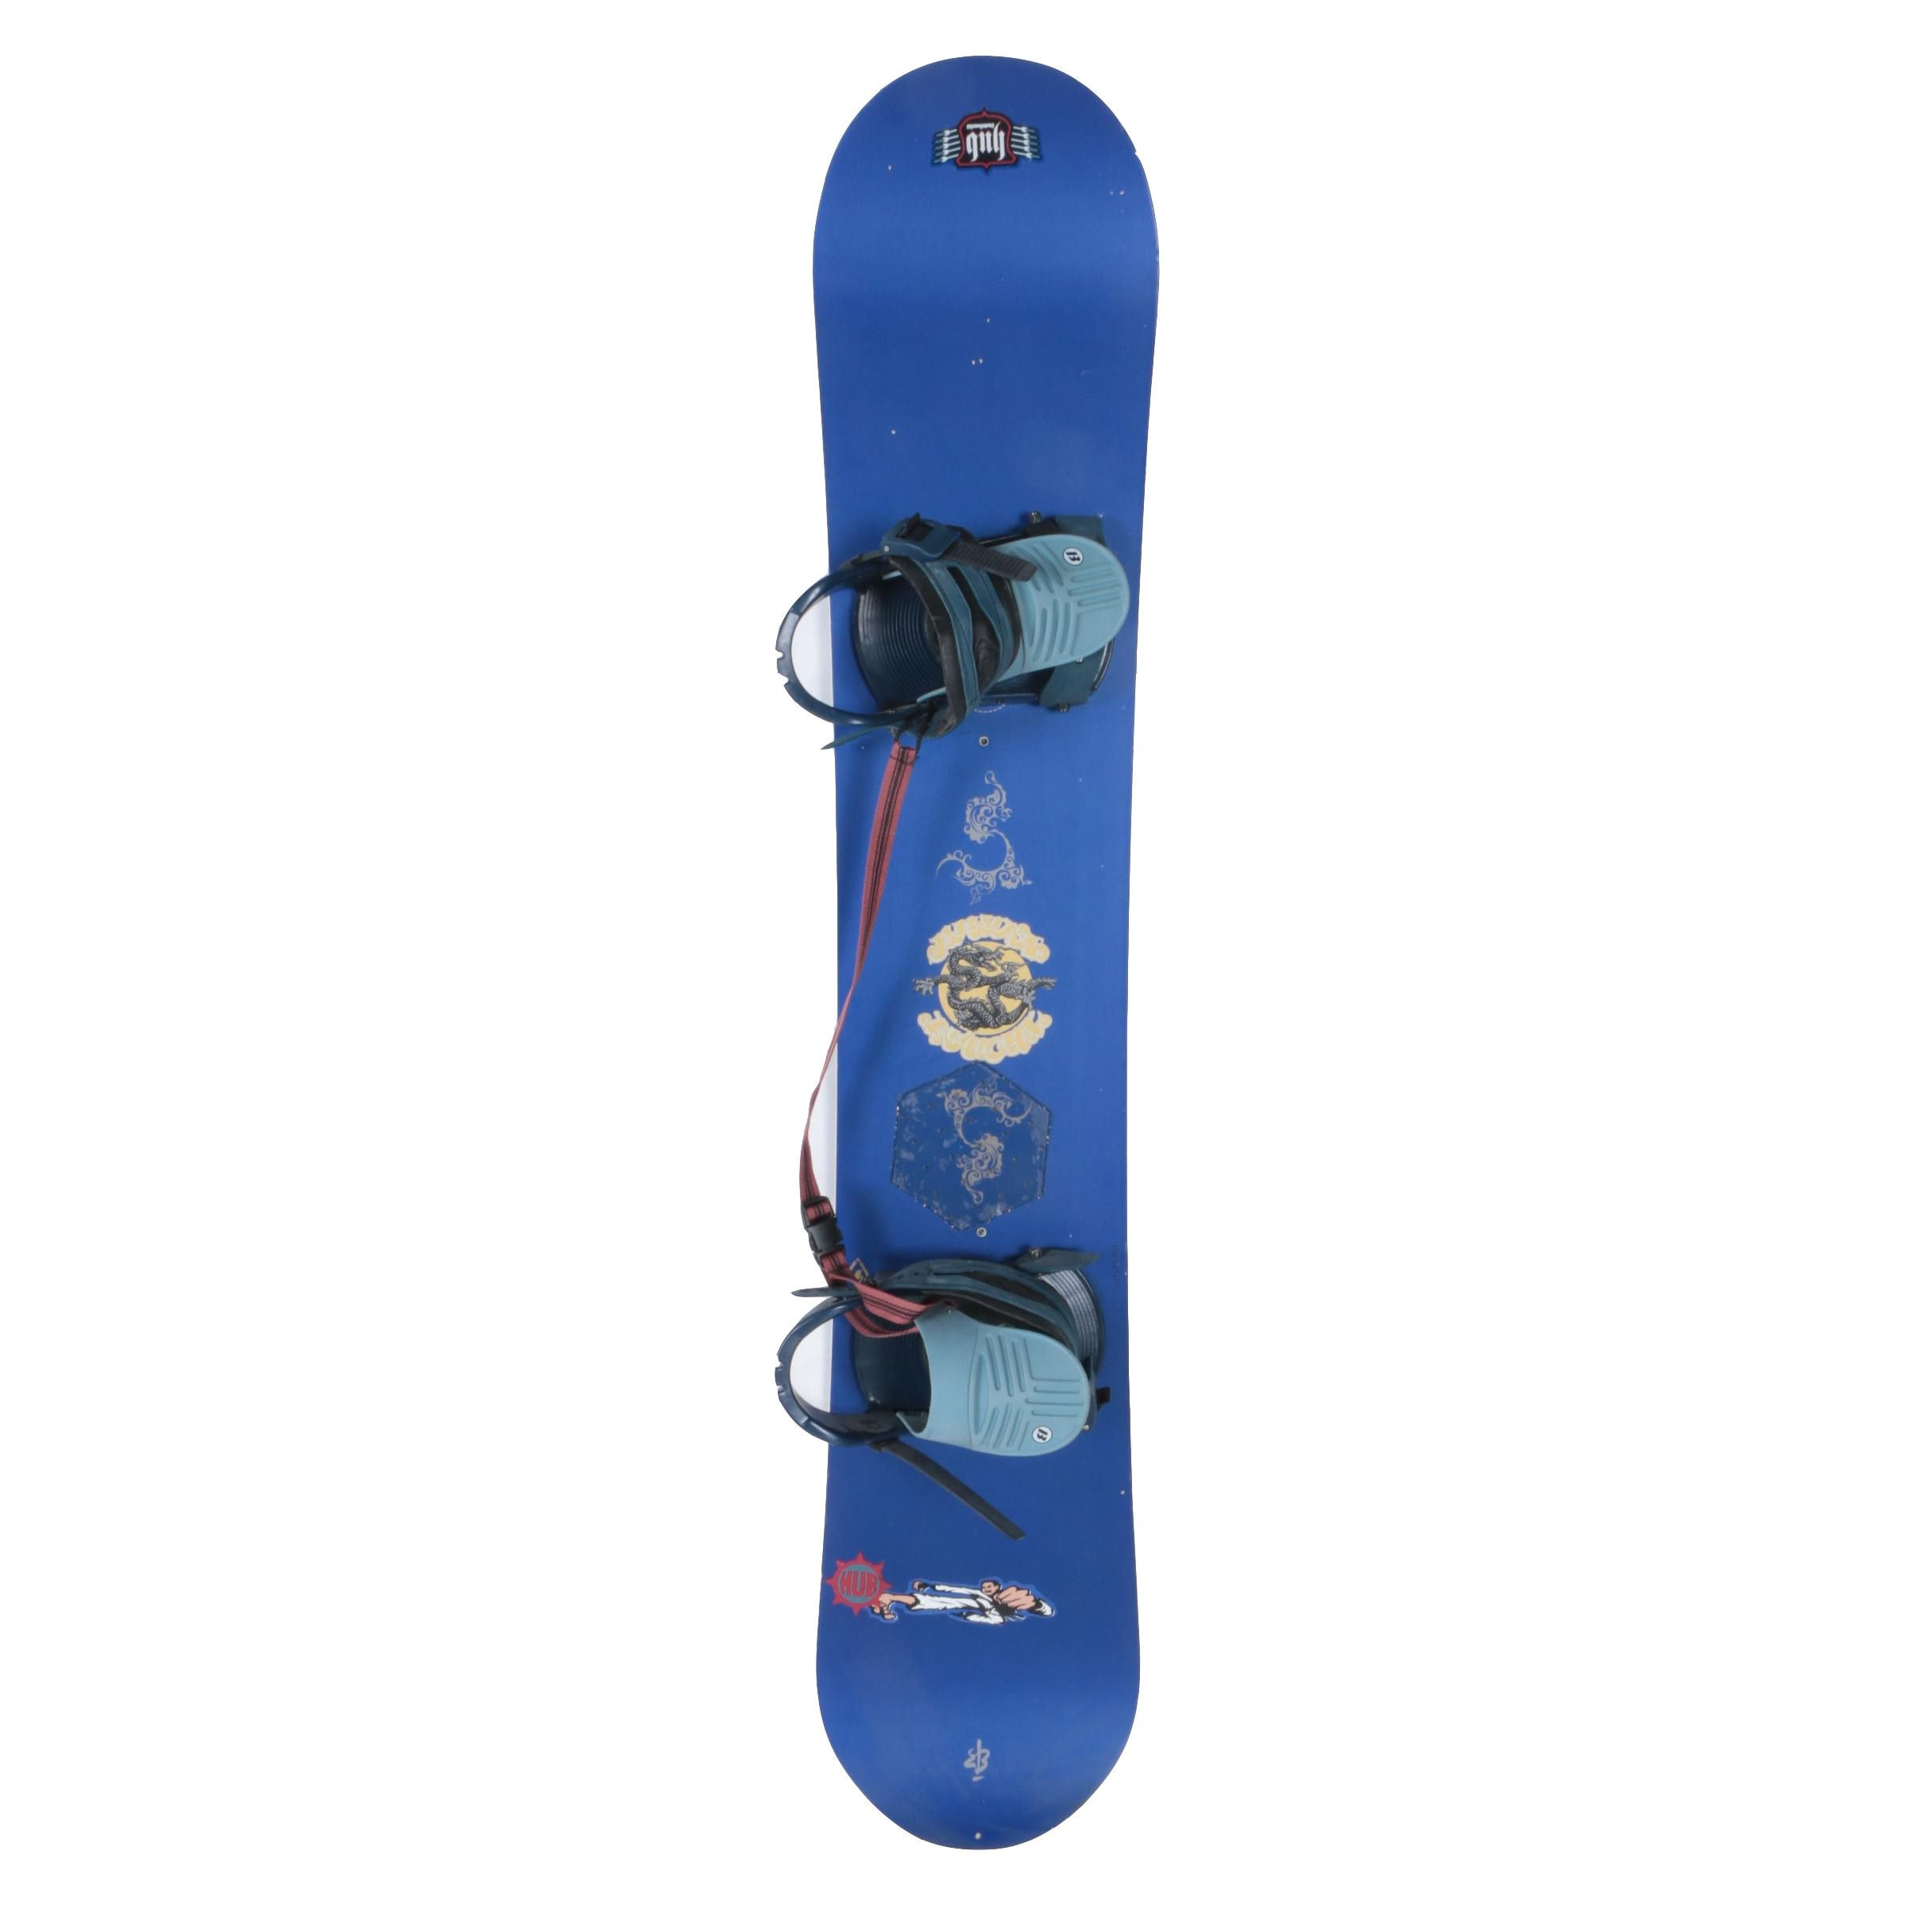 Hub Snowboard with Accessories